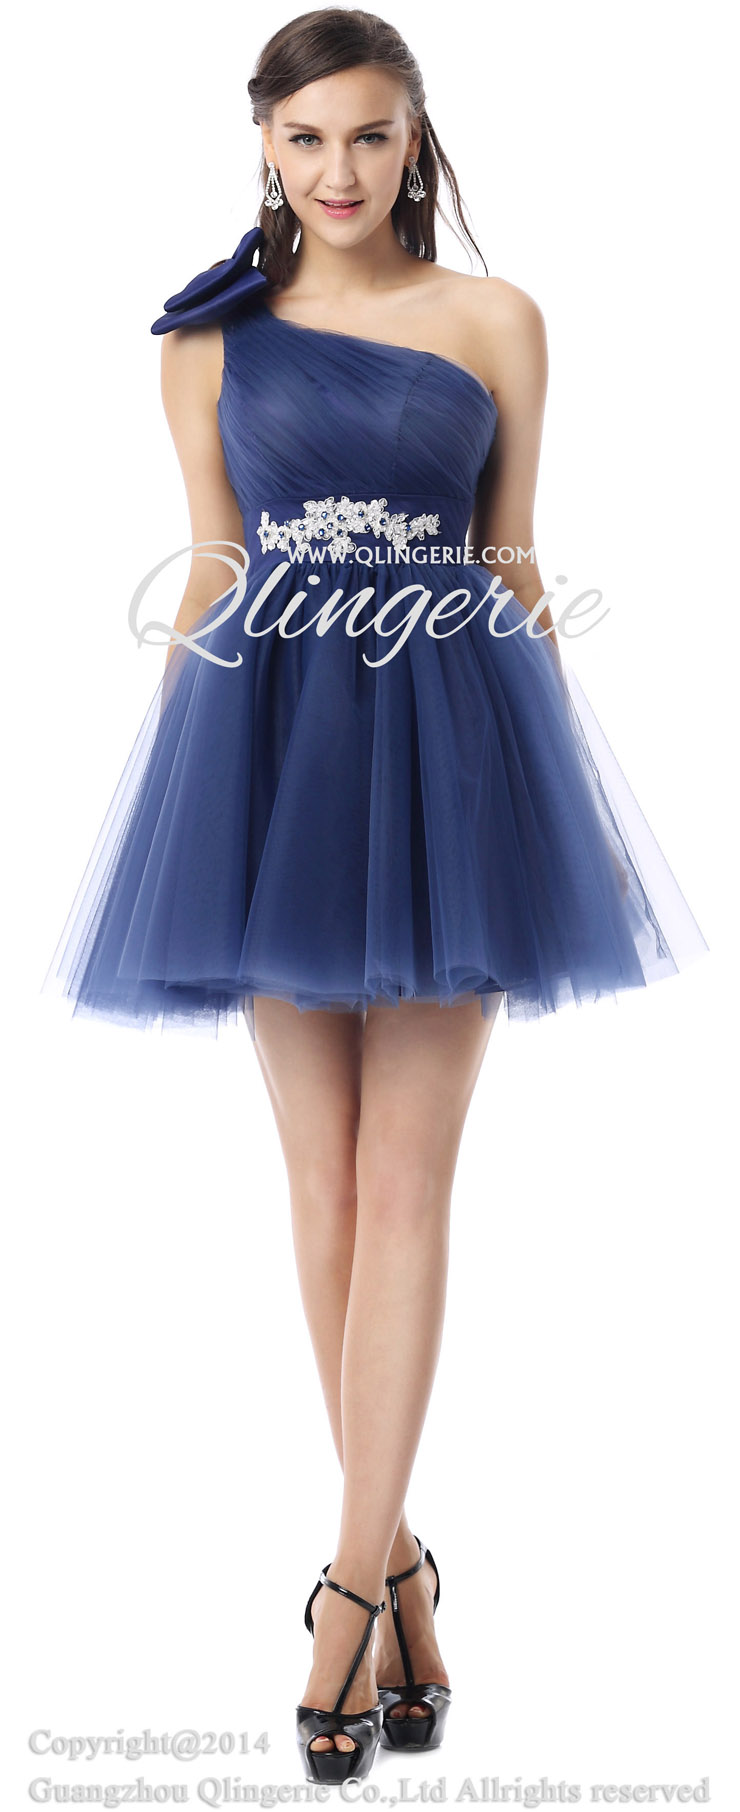 Beading Sweet 16 Blue Short Mini Satin Special Occasion Dress 007